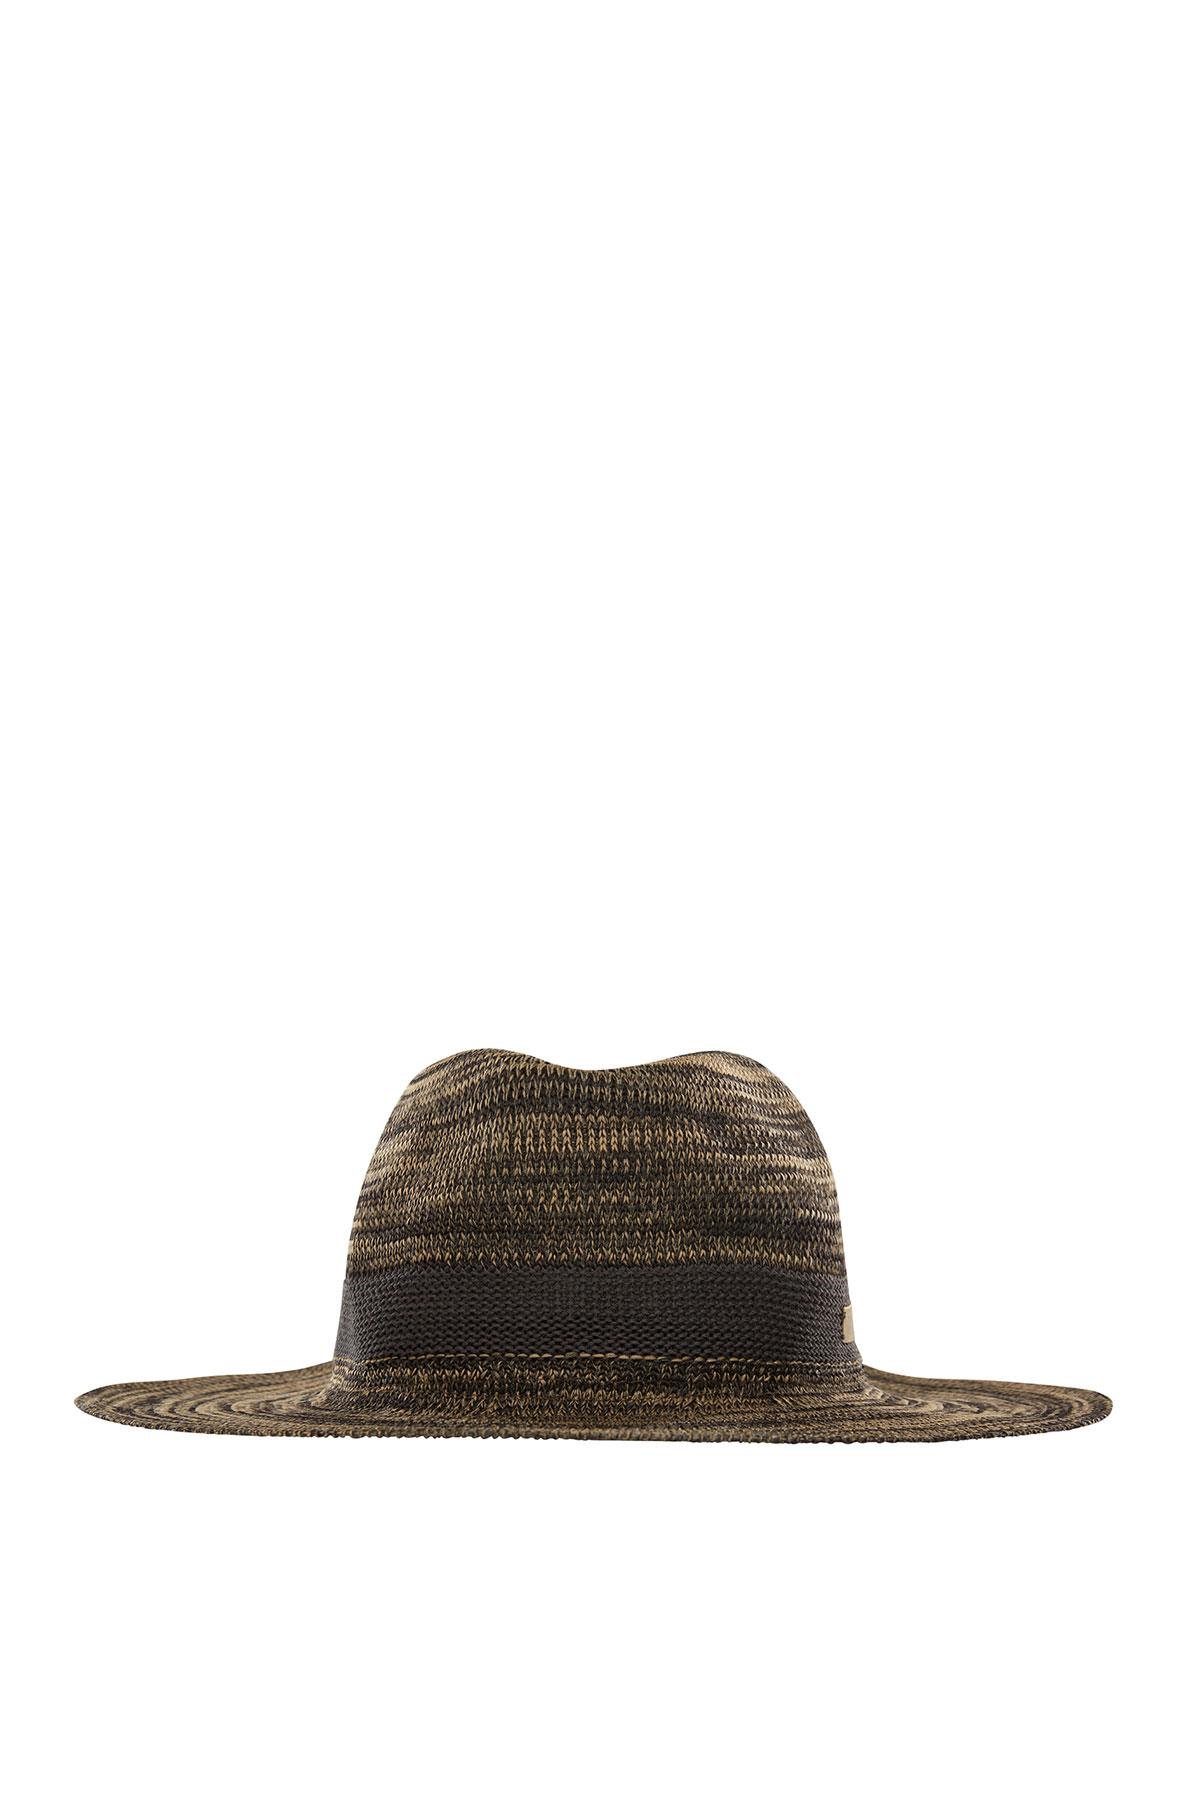 The Northface Kadın Packable Panama Hat T92Sbrb41